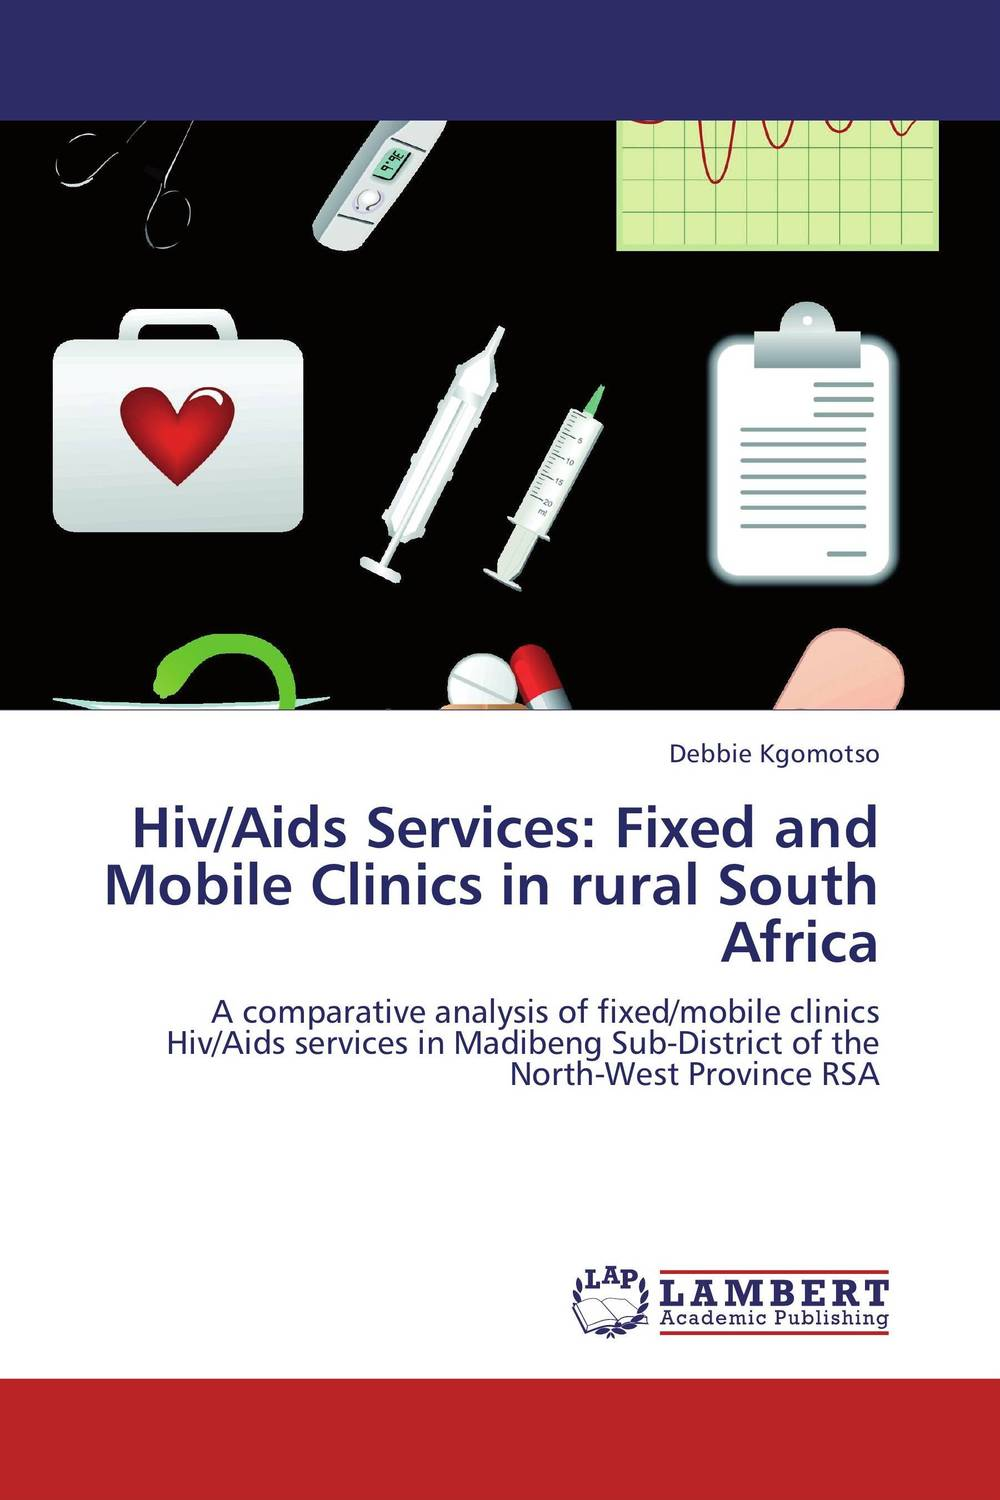 Hiv/Aids Services: Fixed and Mobile Clinics in rural South Africa hmr pregnant women intimate care feminine vaginal care gynecological vagina infections clean for women vagina health probiotics